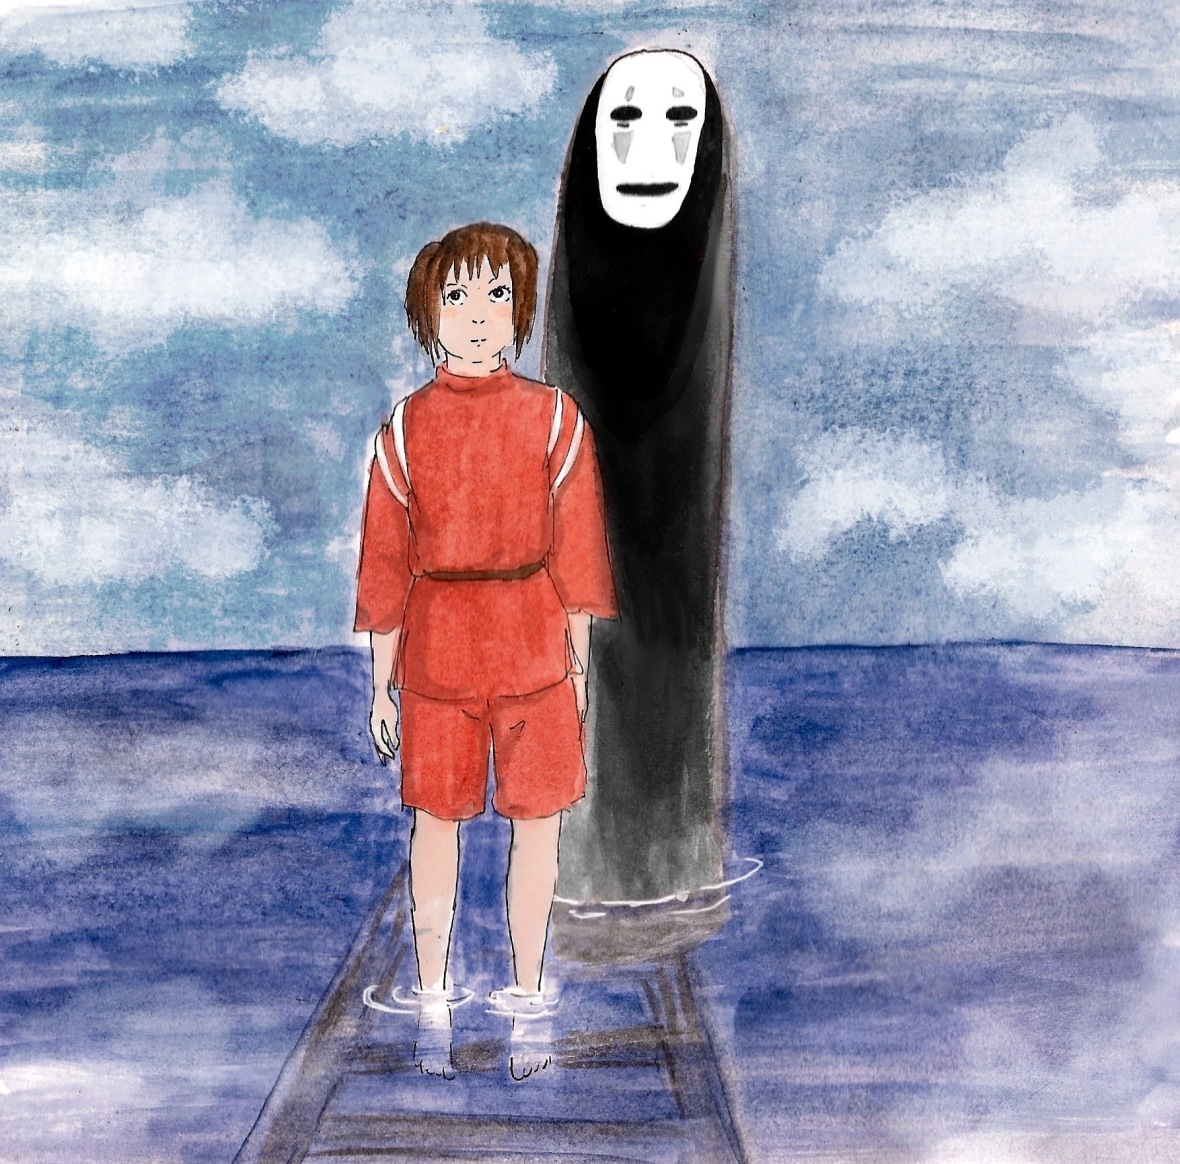 Billie Gavurin studio ghibli article